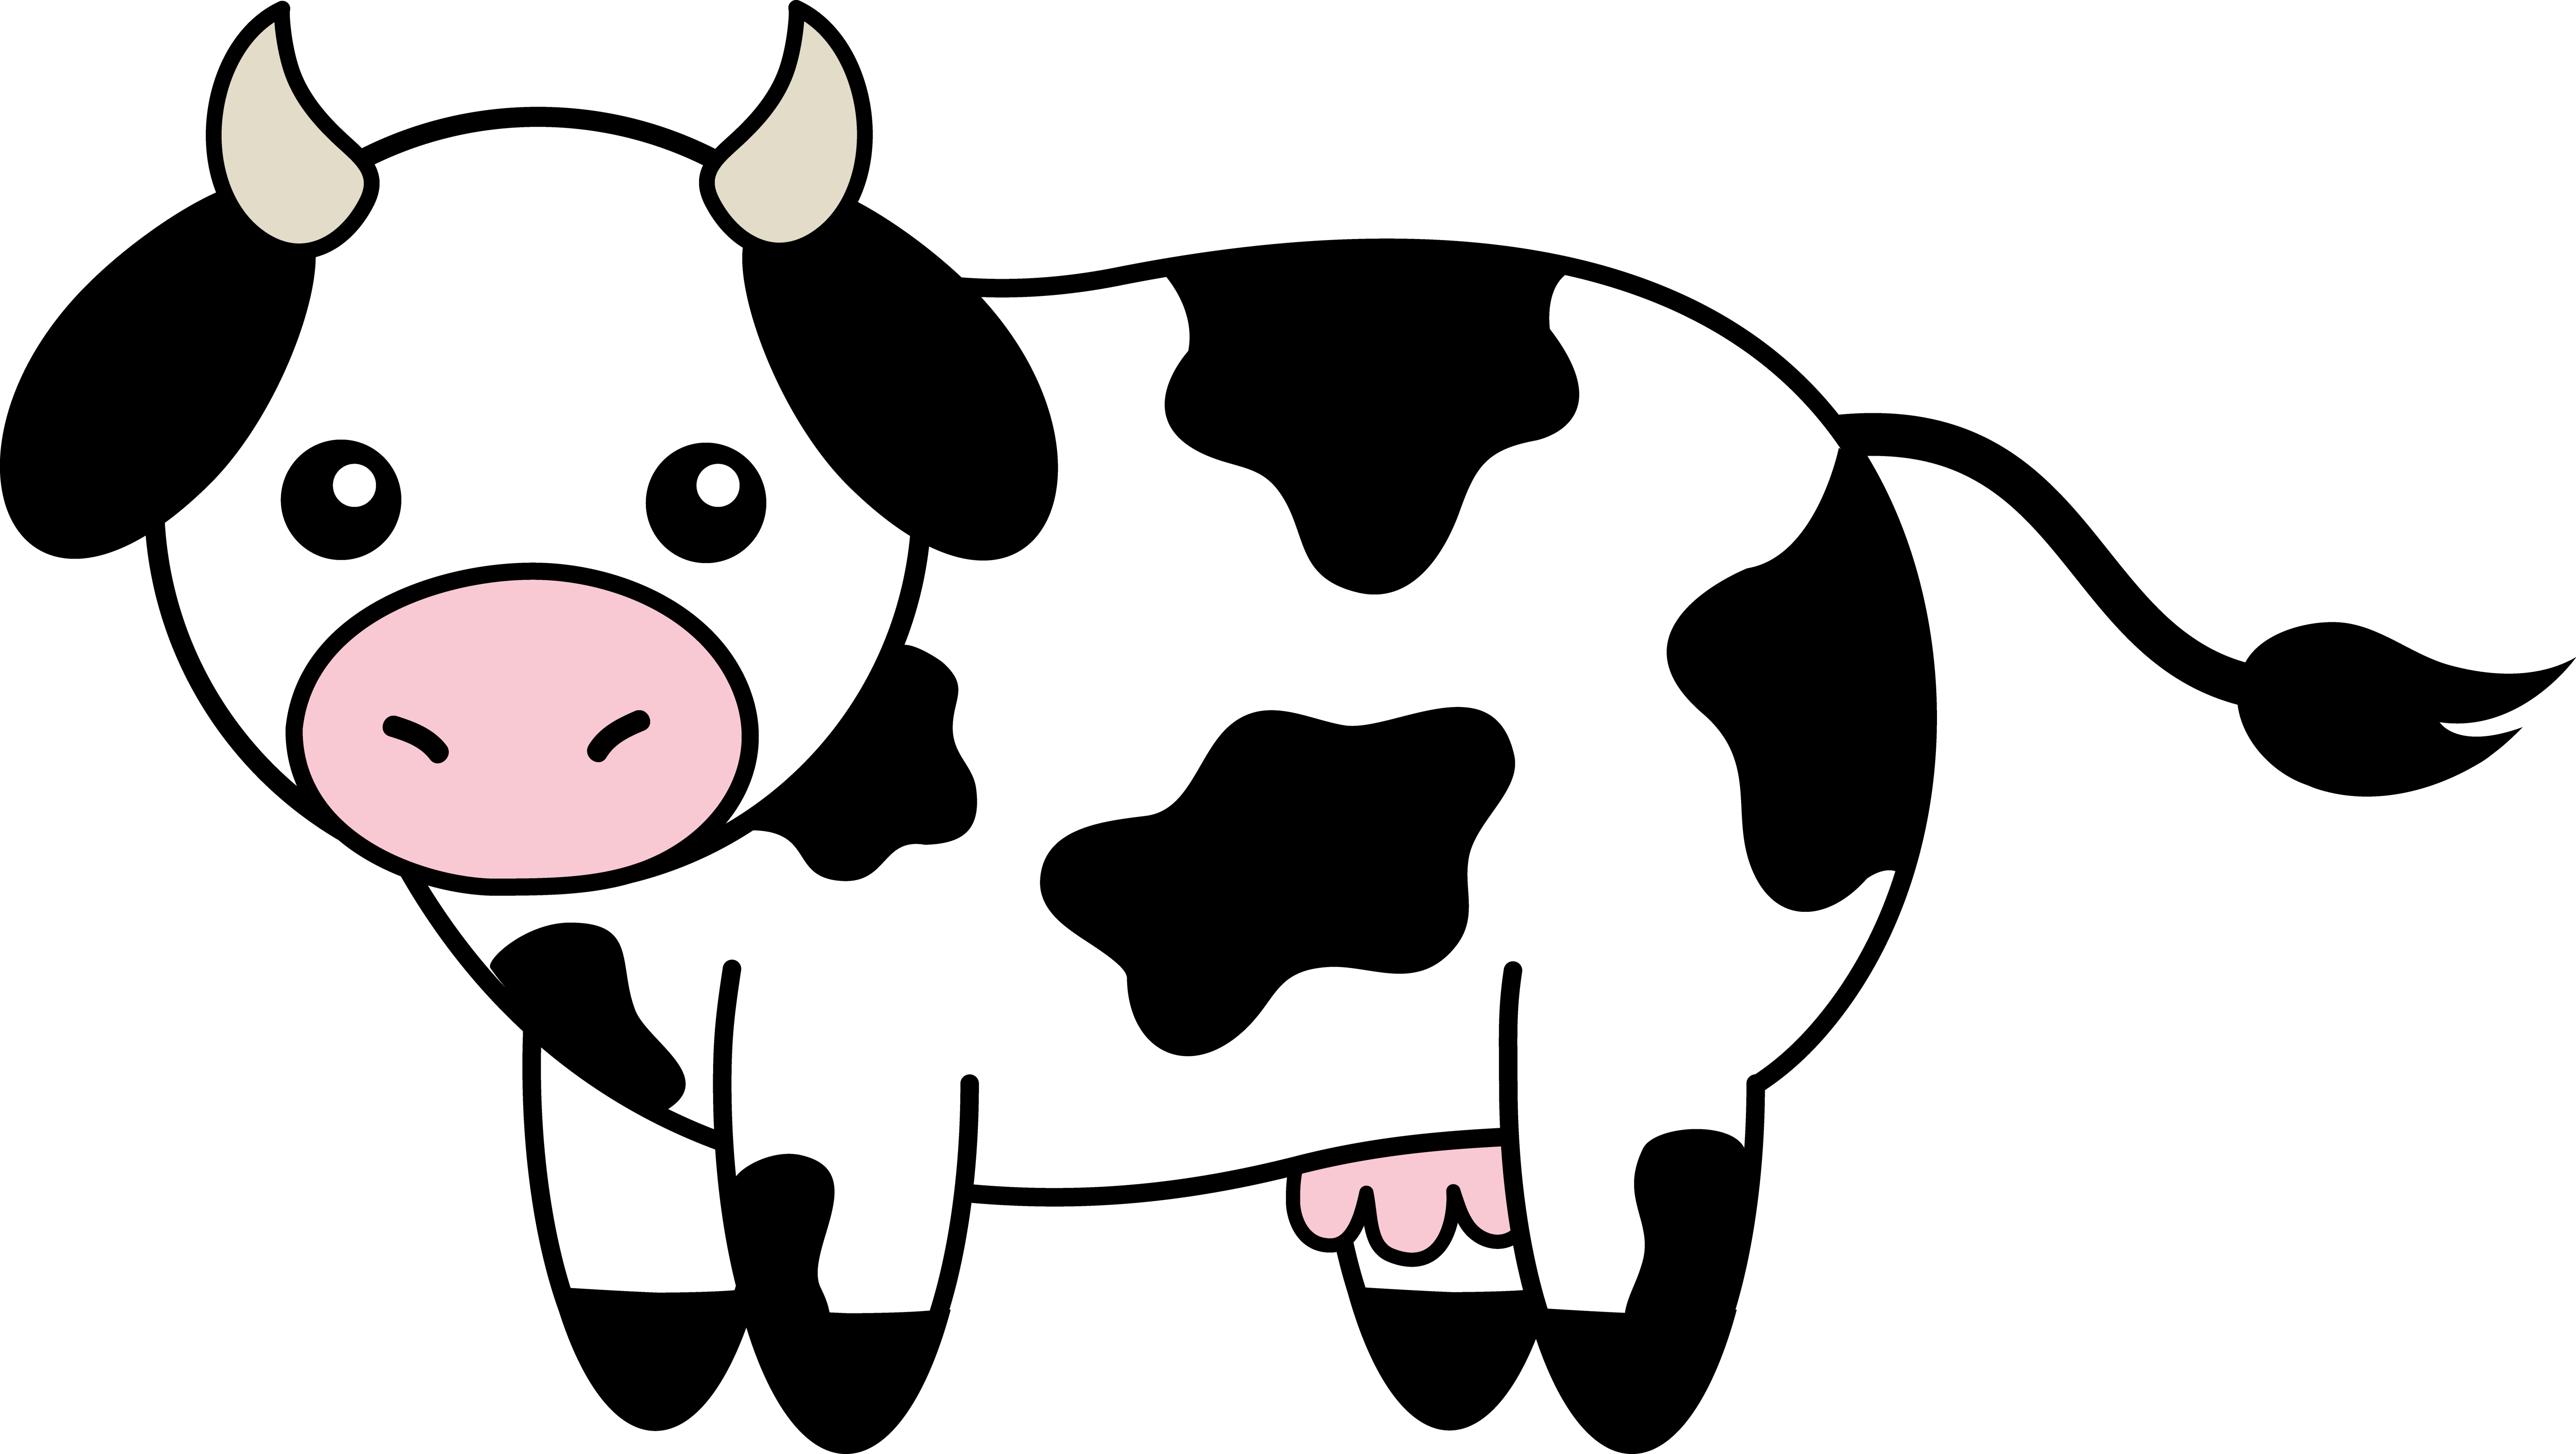 Dairy Cow Clipart-Dairy Cow Clipart-7